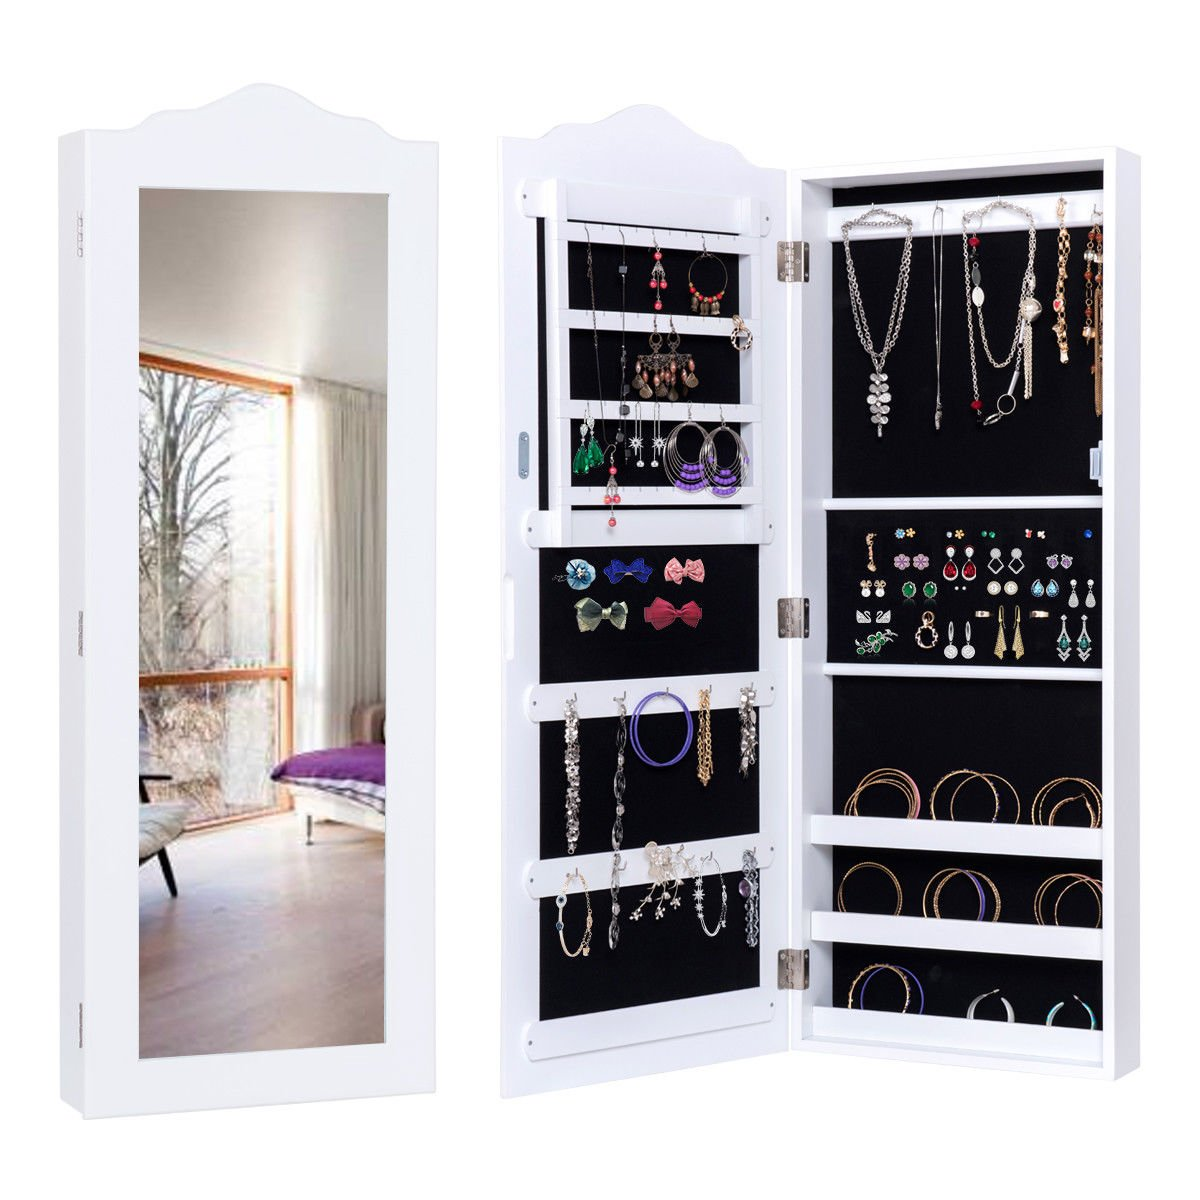 Mirrored White Jewelry Cabinet Armoire Storage Organizer Home Decor Wall Mounted